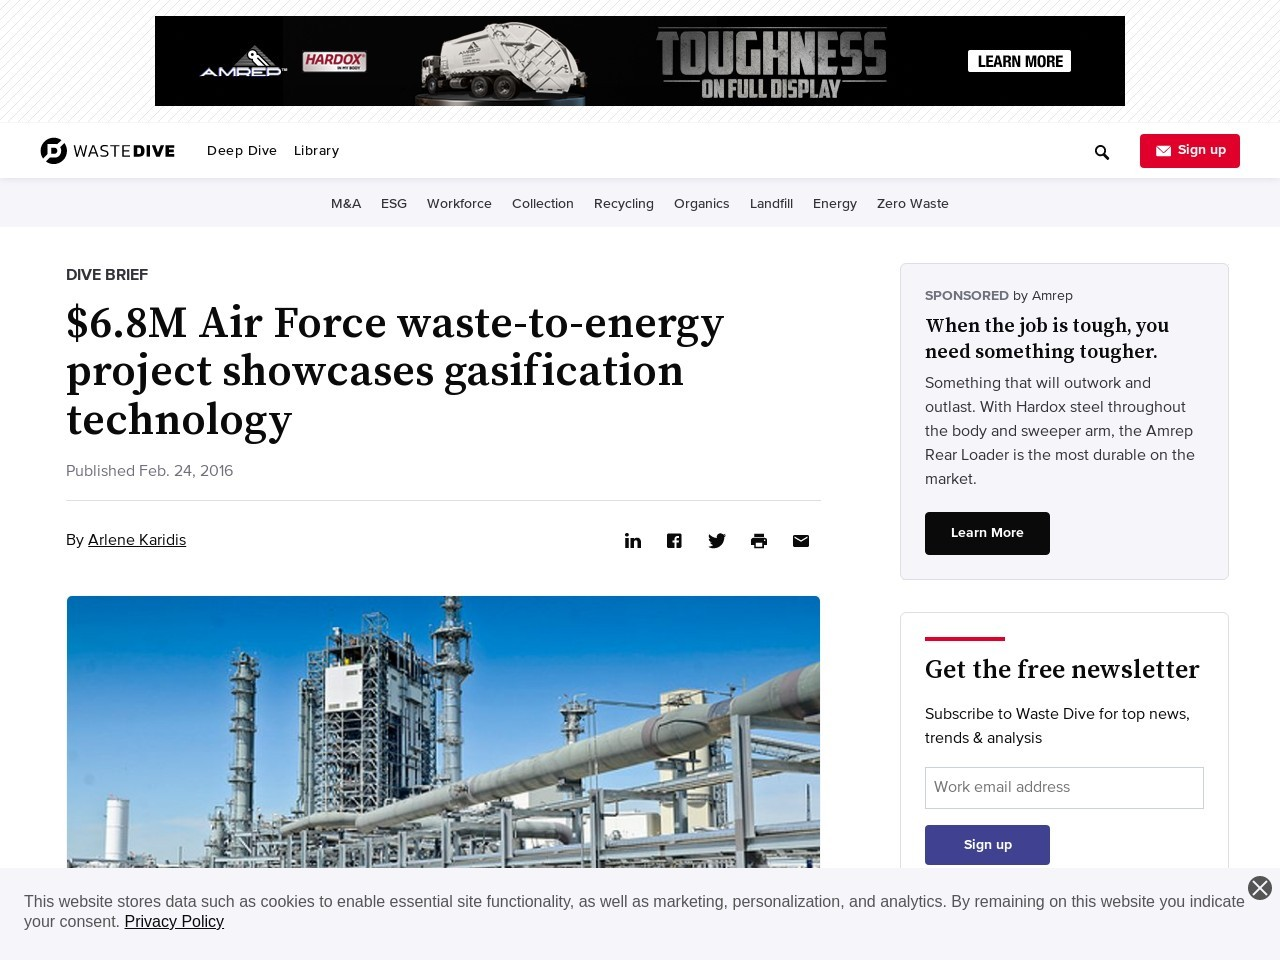 $6.8M Air Force waste-to-energy project showcases gasification technology